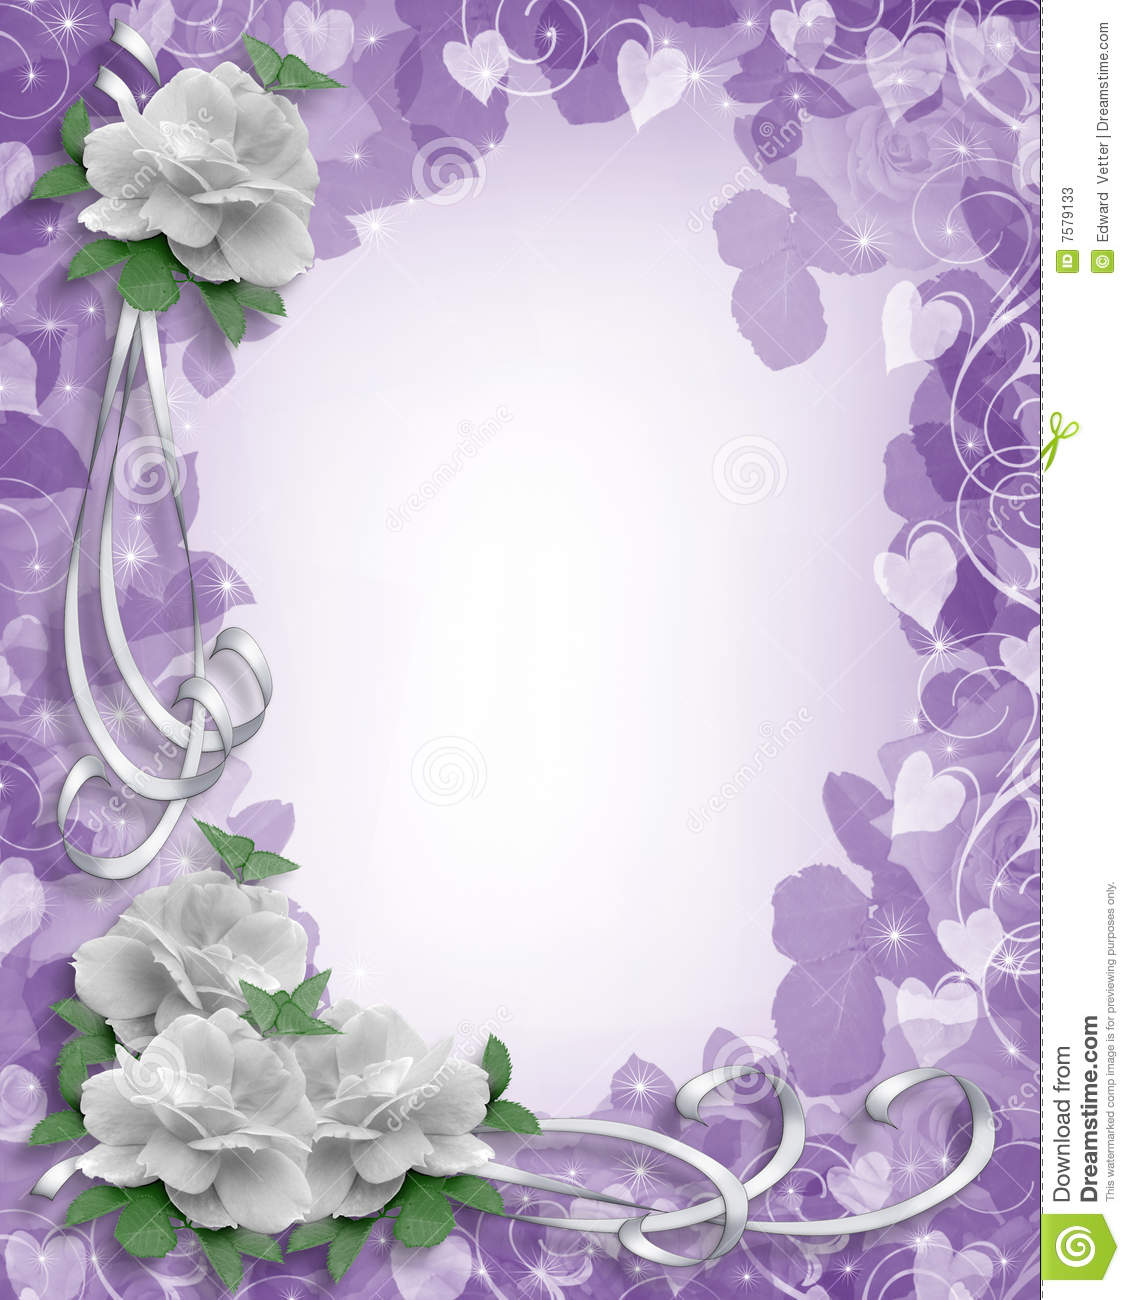 Butterfly Birthday Invitation Cards is good invitation example